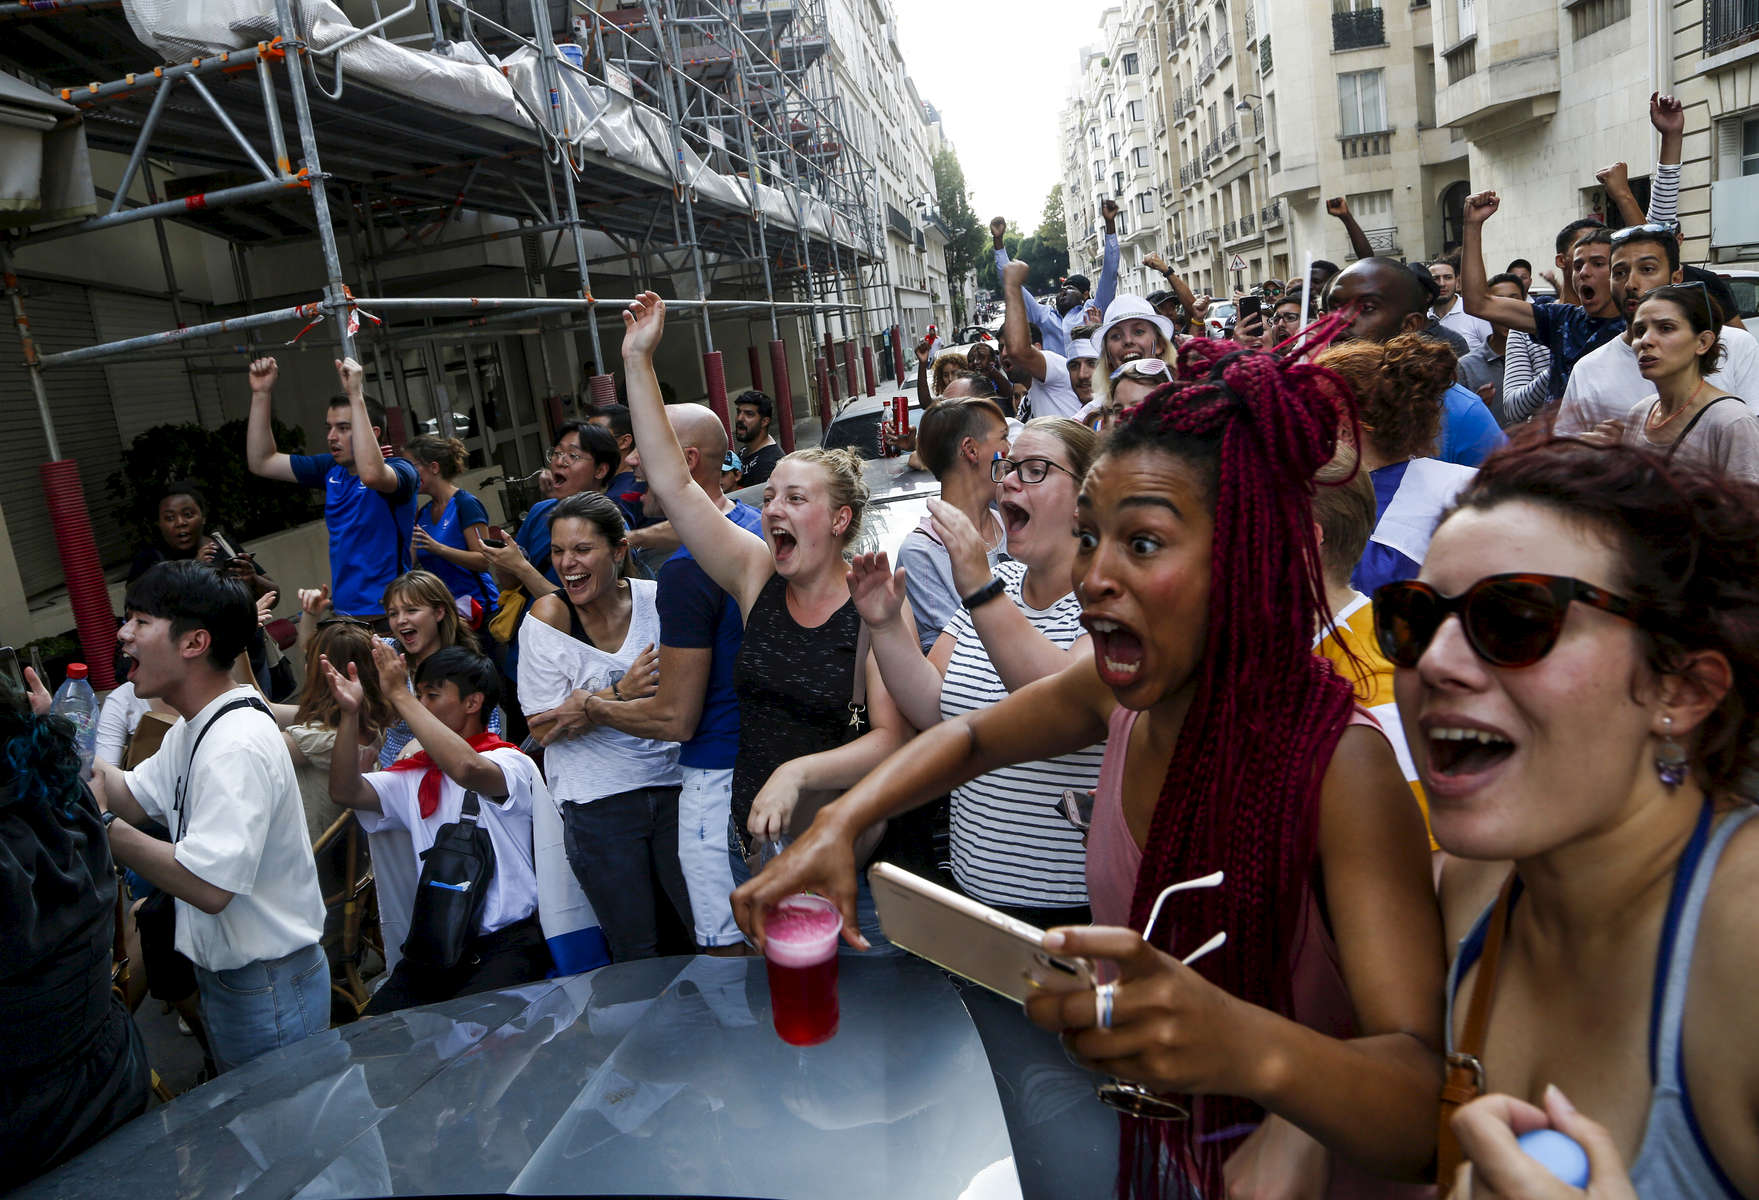 Supporters react when France strikes its first goal during the World Cup Soccer final on July 15, 2018, in Paris, France.On the historical Soccer World Cup final between France and Croatia, fans were invited to watch the game on giant screens set up in the Champs de Mars, in front of the Eiffel Tower in Paris. But this Fan Zone was full long before the start of the game, leaving thousand of supporters scrambling to find a place to watch the game close by. The nearby and usually quiet coffees and restaurants were quickly over flooded. But for the next two and a half hours, it did not matter to watch the game from the middle of the streets. Very few cars were circulating, because almost everyone in France was watching, or trying to watch the game.